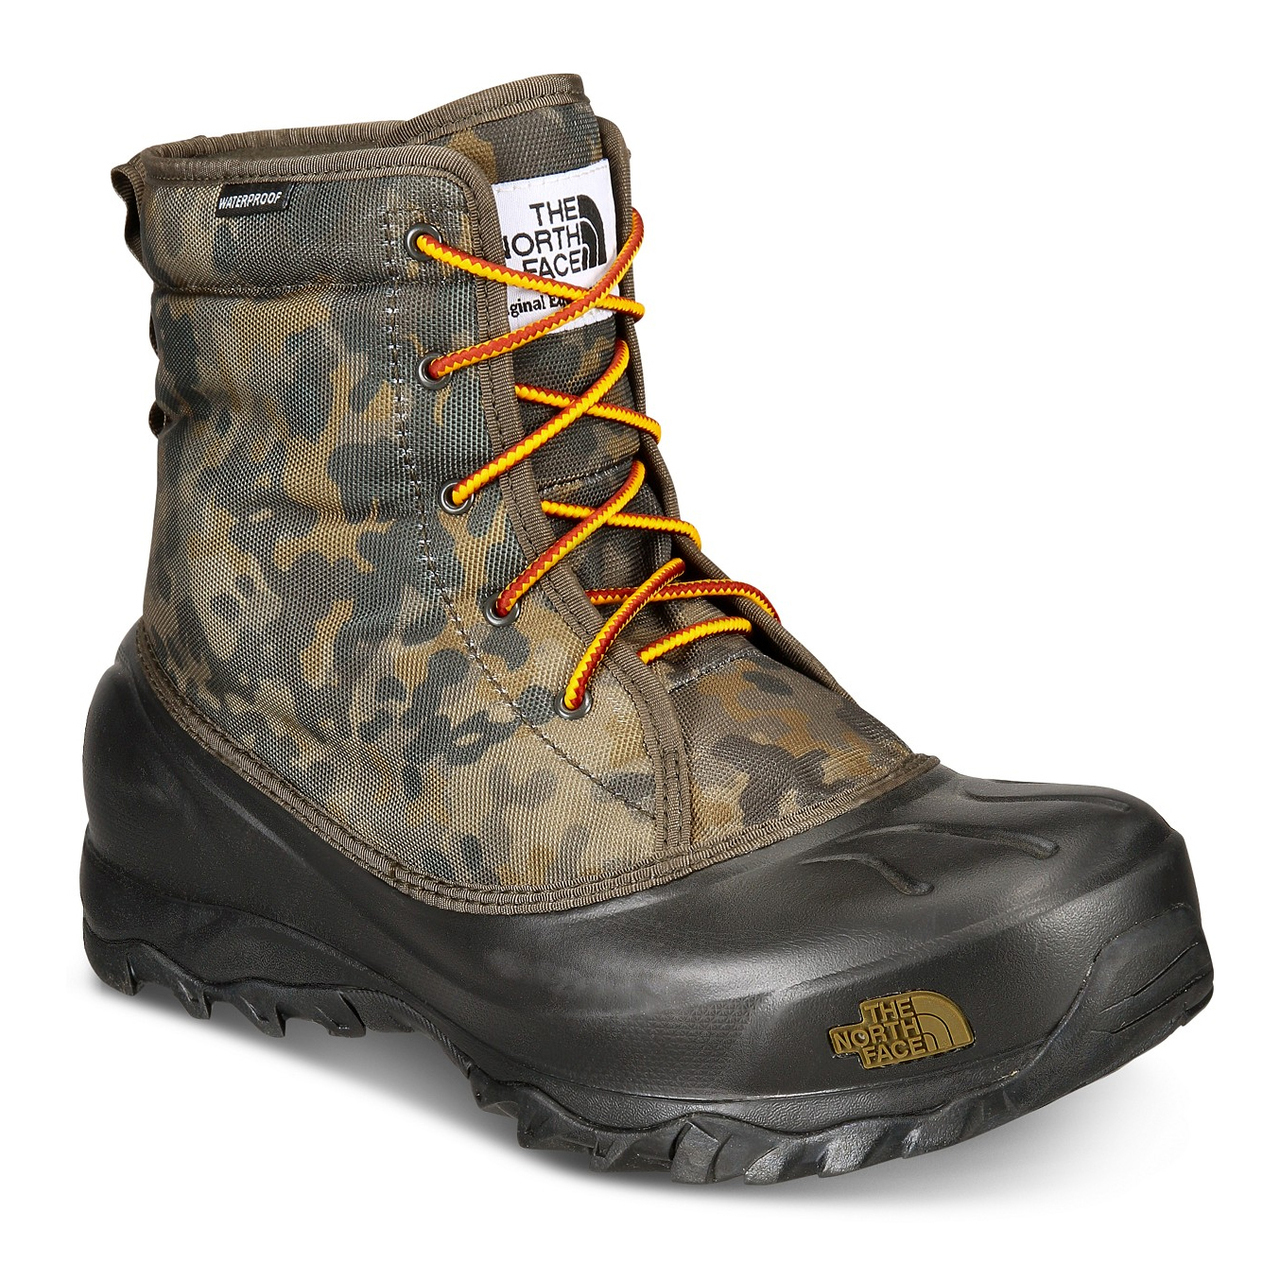 5624f0337 The North Face Men's Tsumoru Waterproof Winter Boots #NF0A3MKS8HN